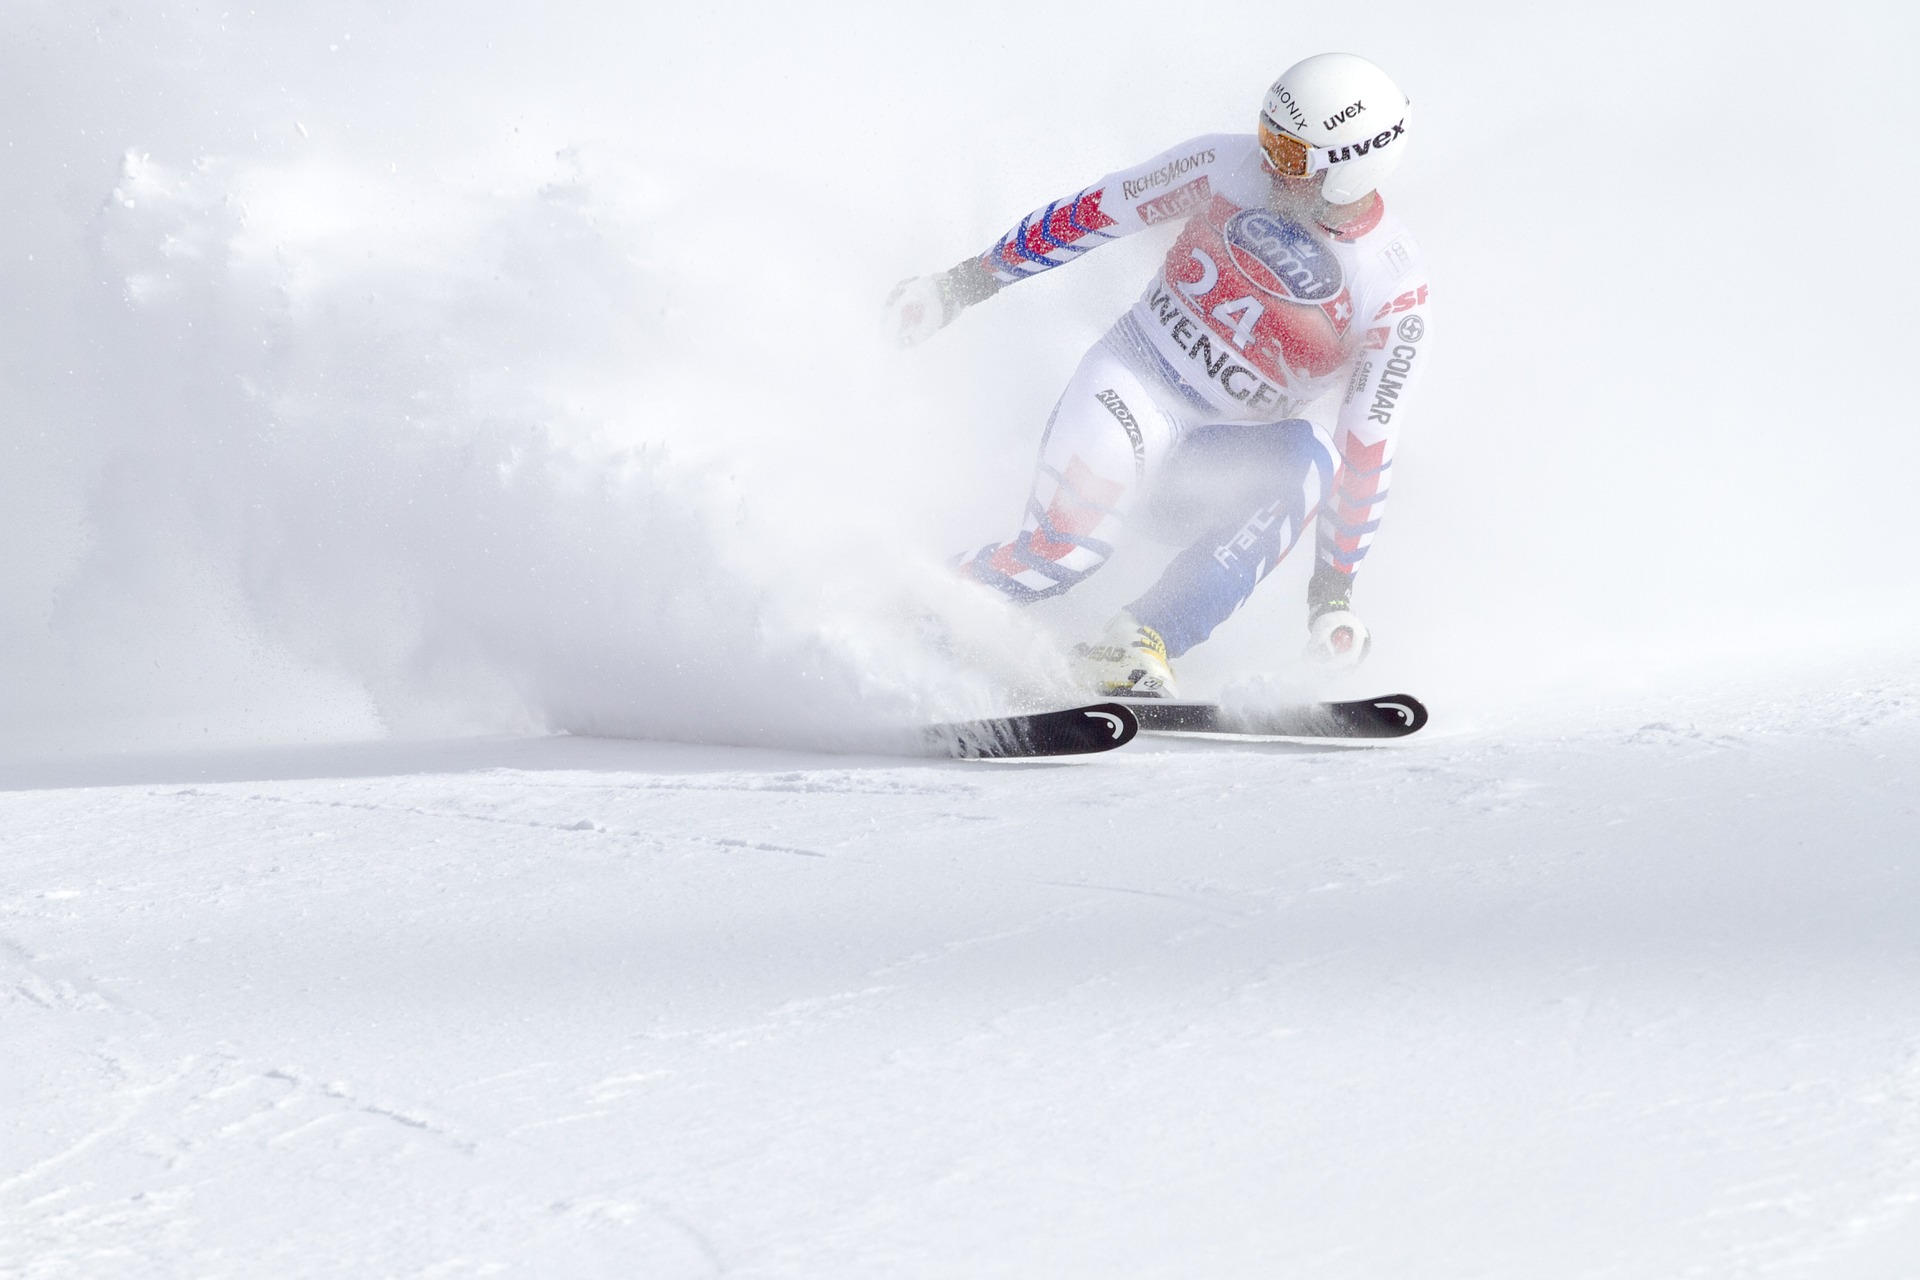 Downhill Skiing- Safety, Rules, and Location